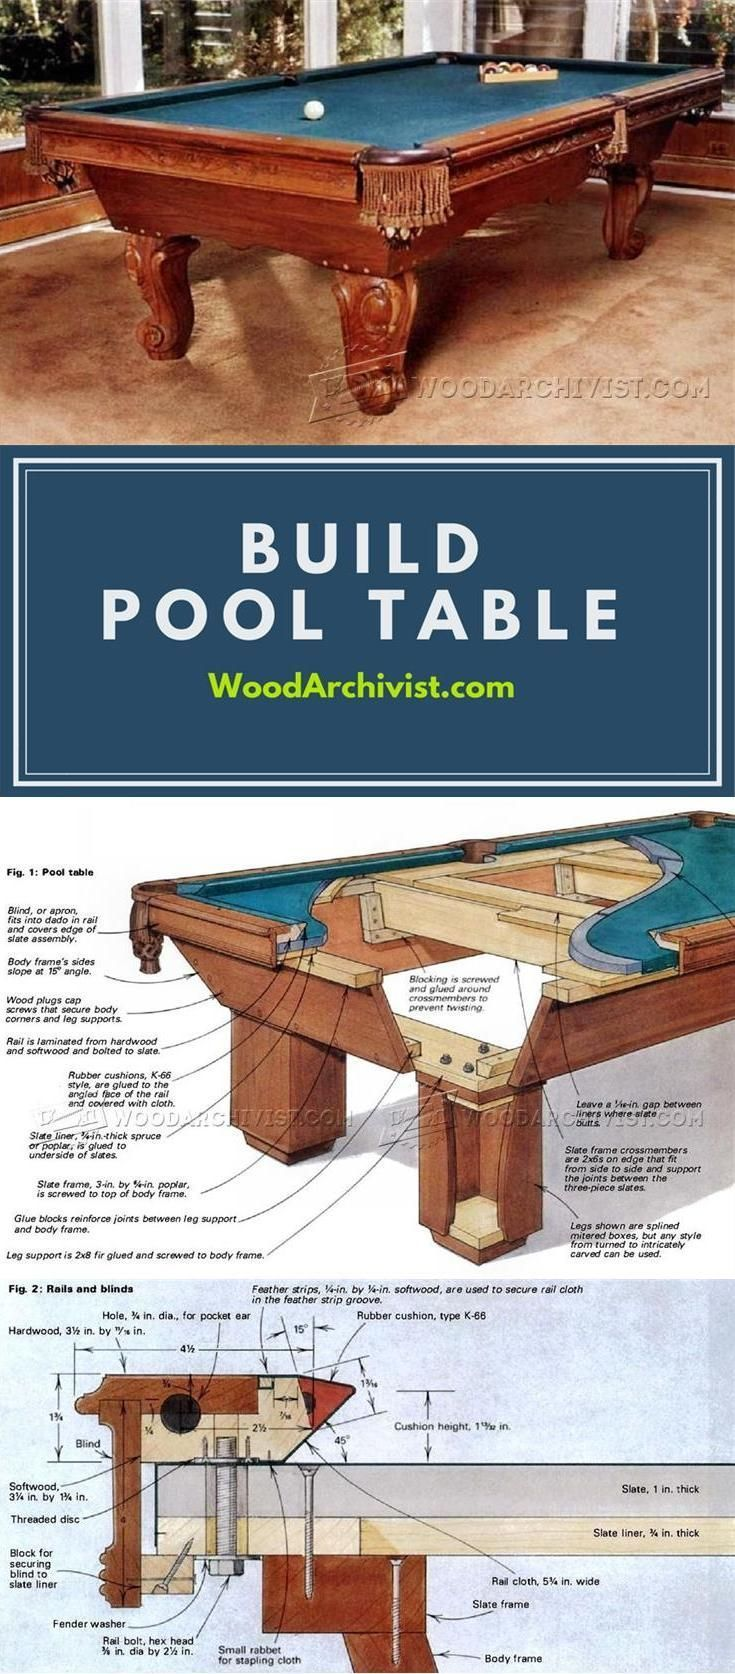 375 best images about woodworking projects on pinterest for Pool table woodworking plans